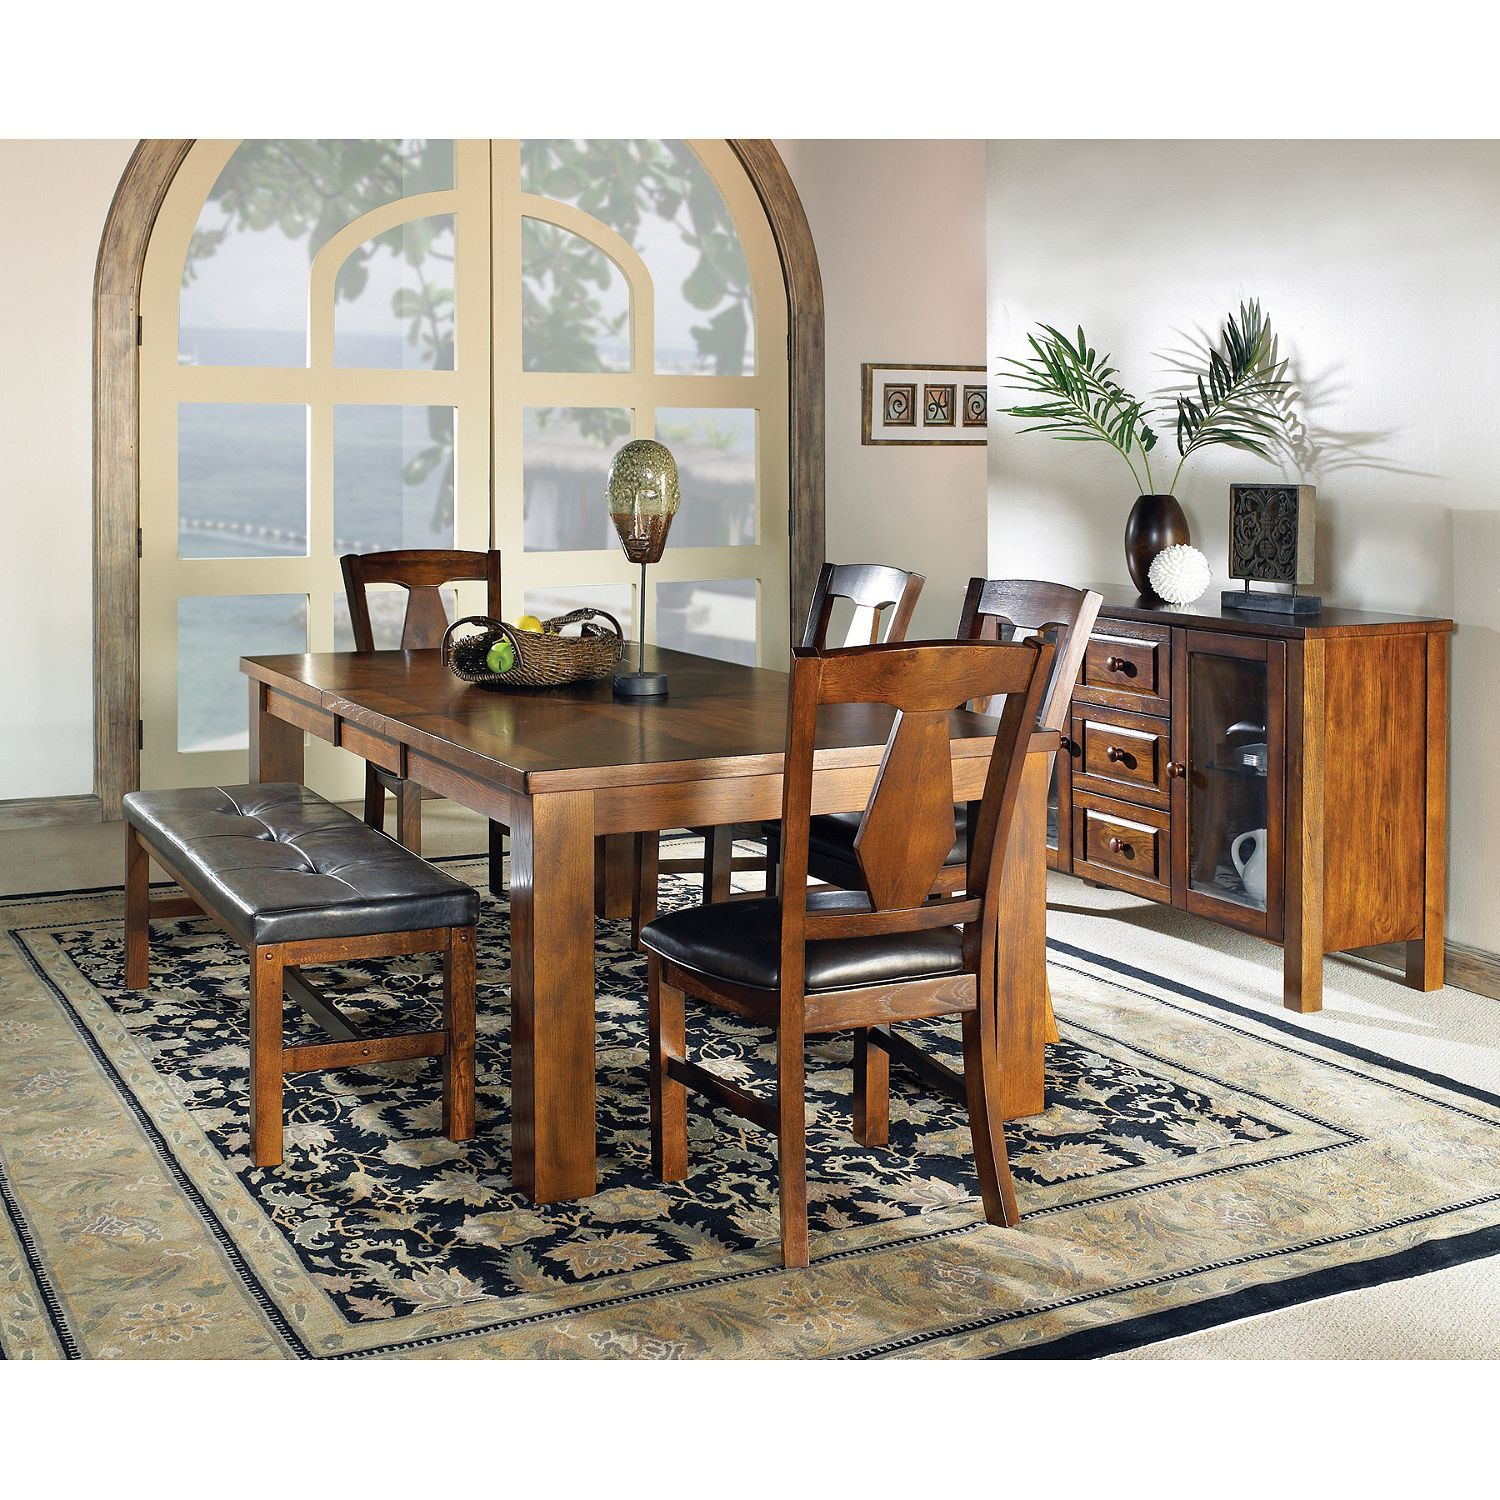 Fowler Dining Table ChairsDining Room